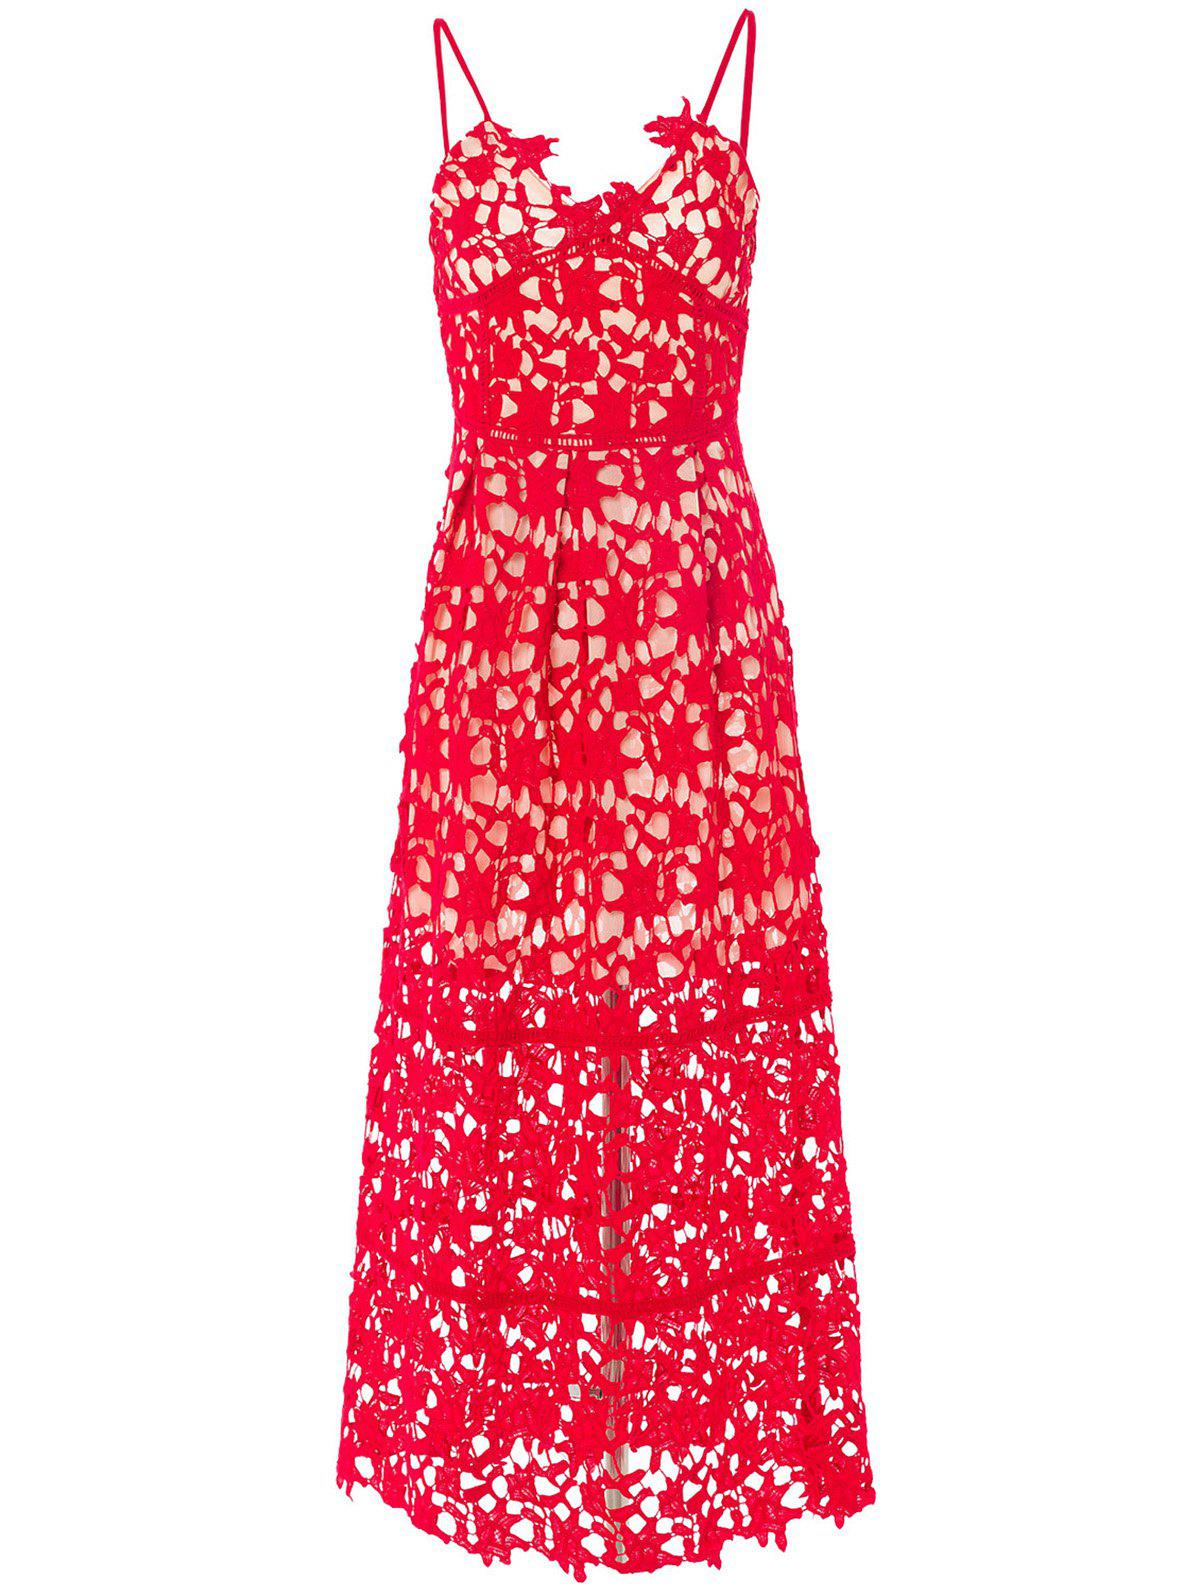 Elegant Spaghetti Strap Sleeveless Backless Solid Color Hollow Out Lace Women's Dress